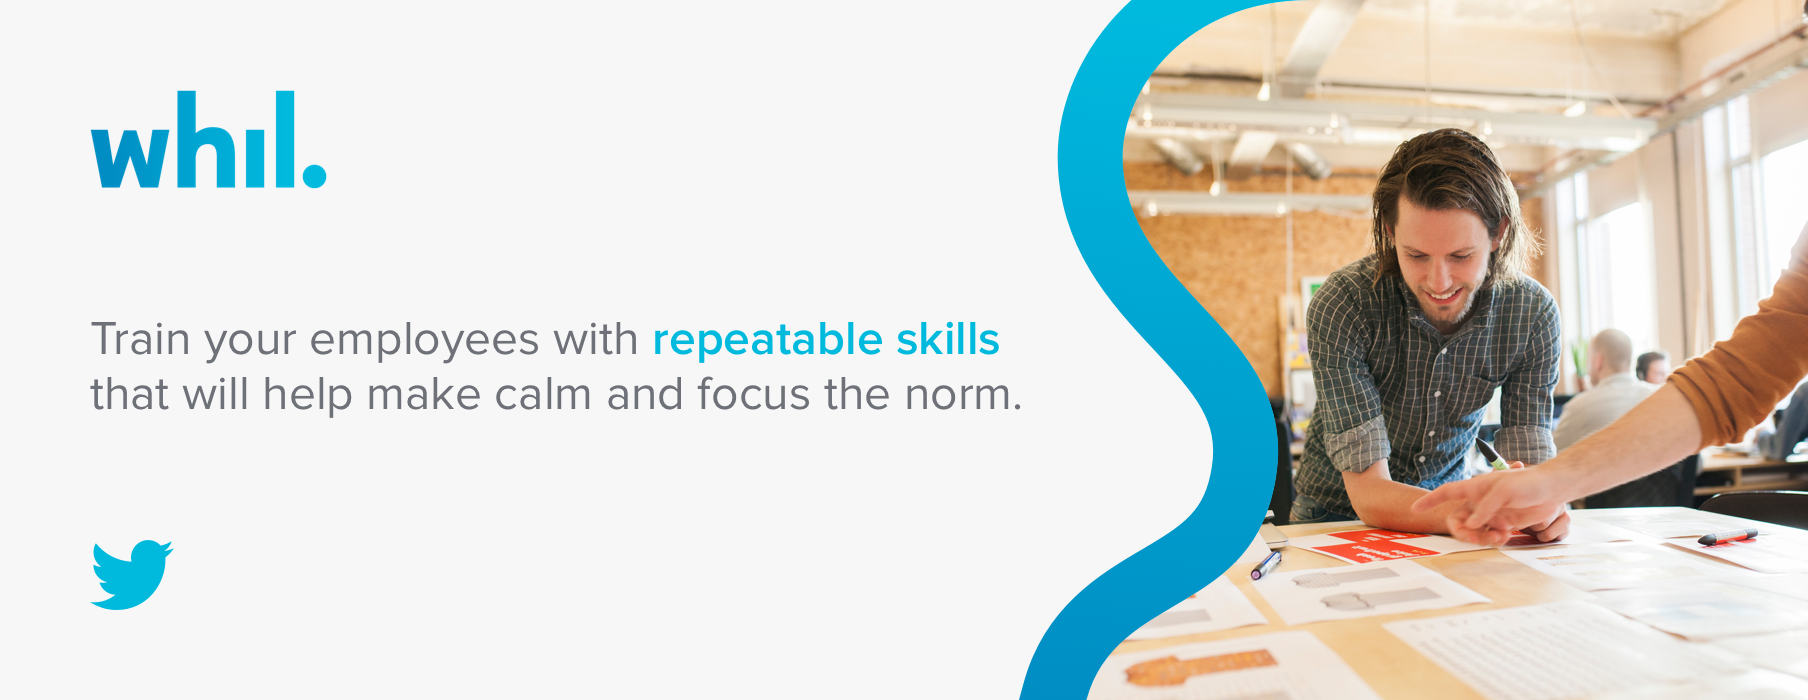 Train your employees with repeatable skills that will help make calm and focus the norm.